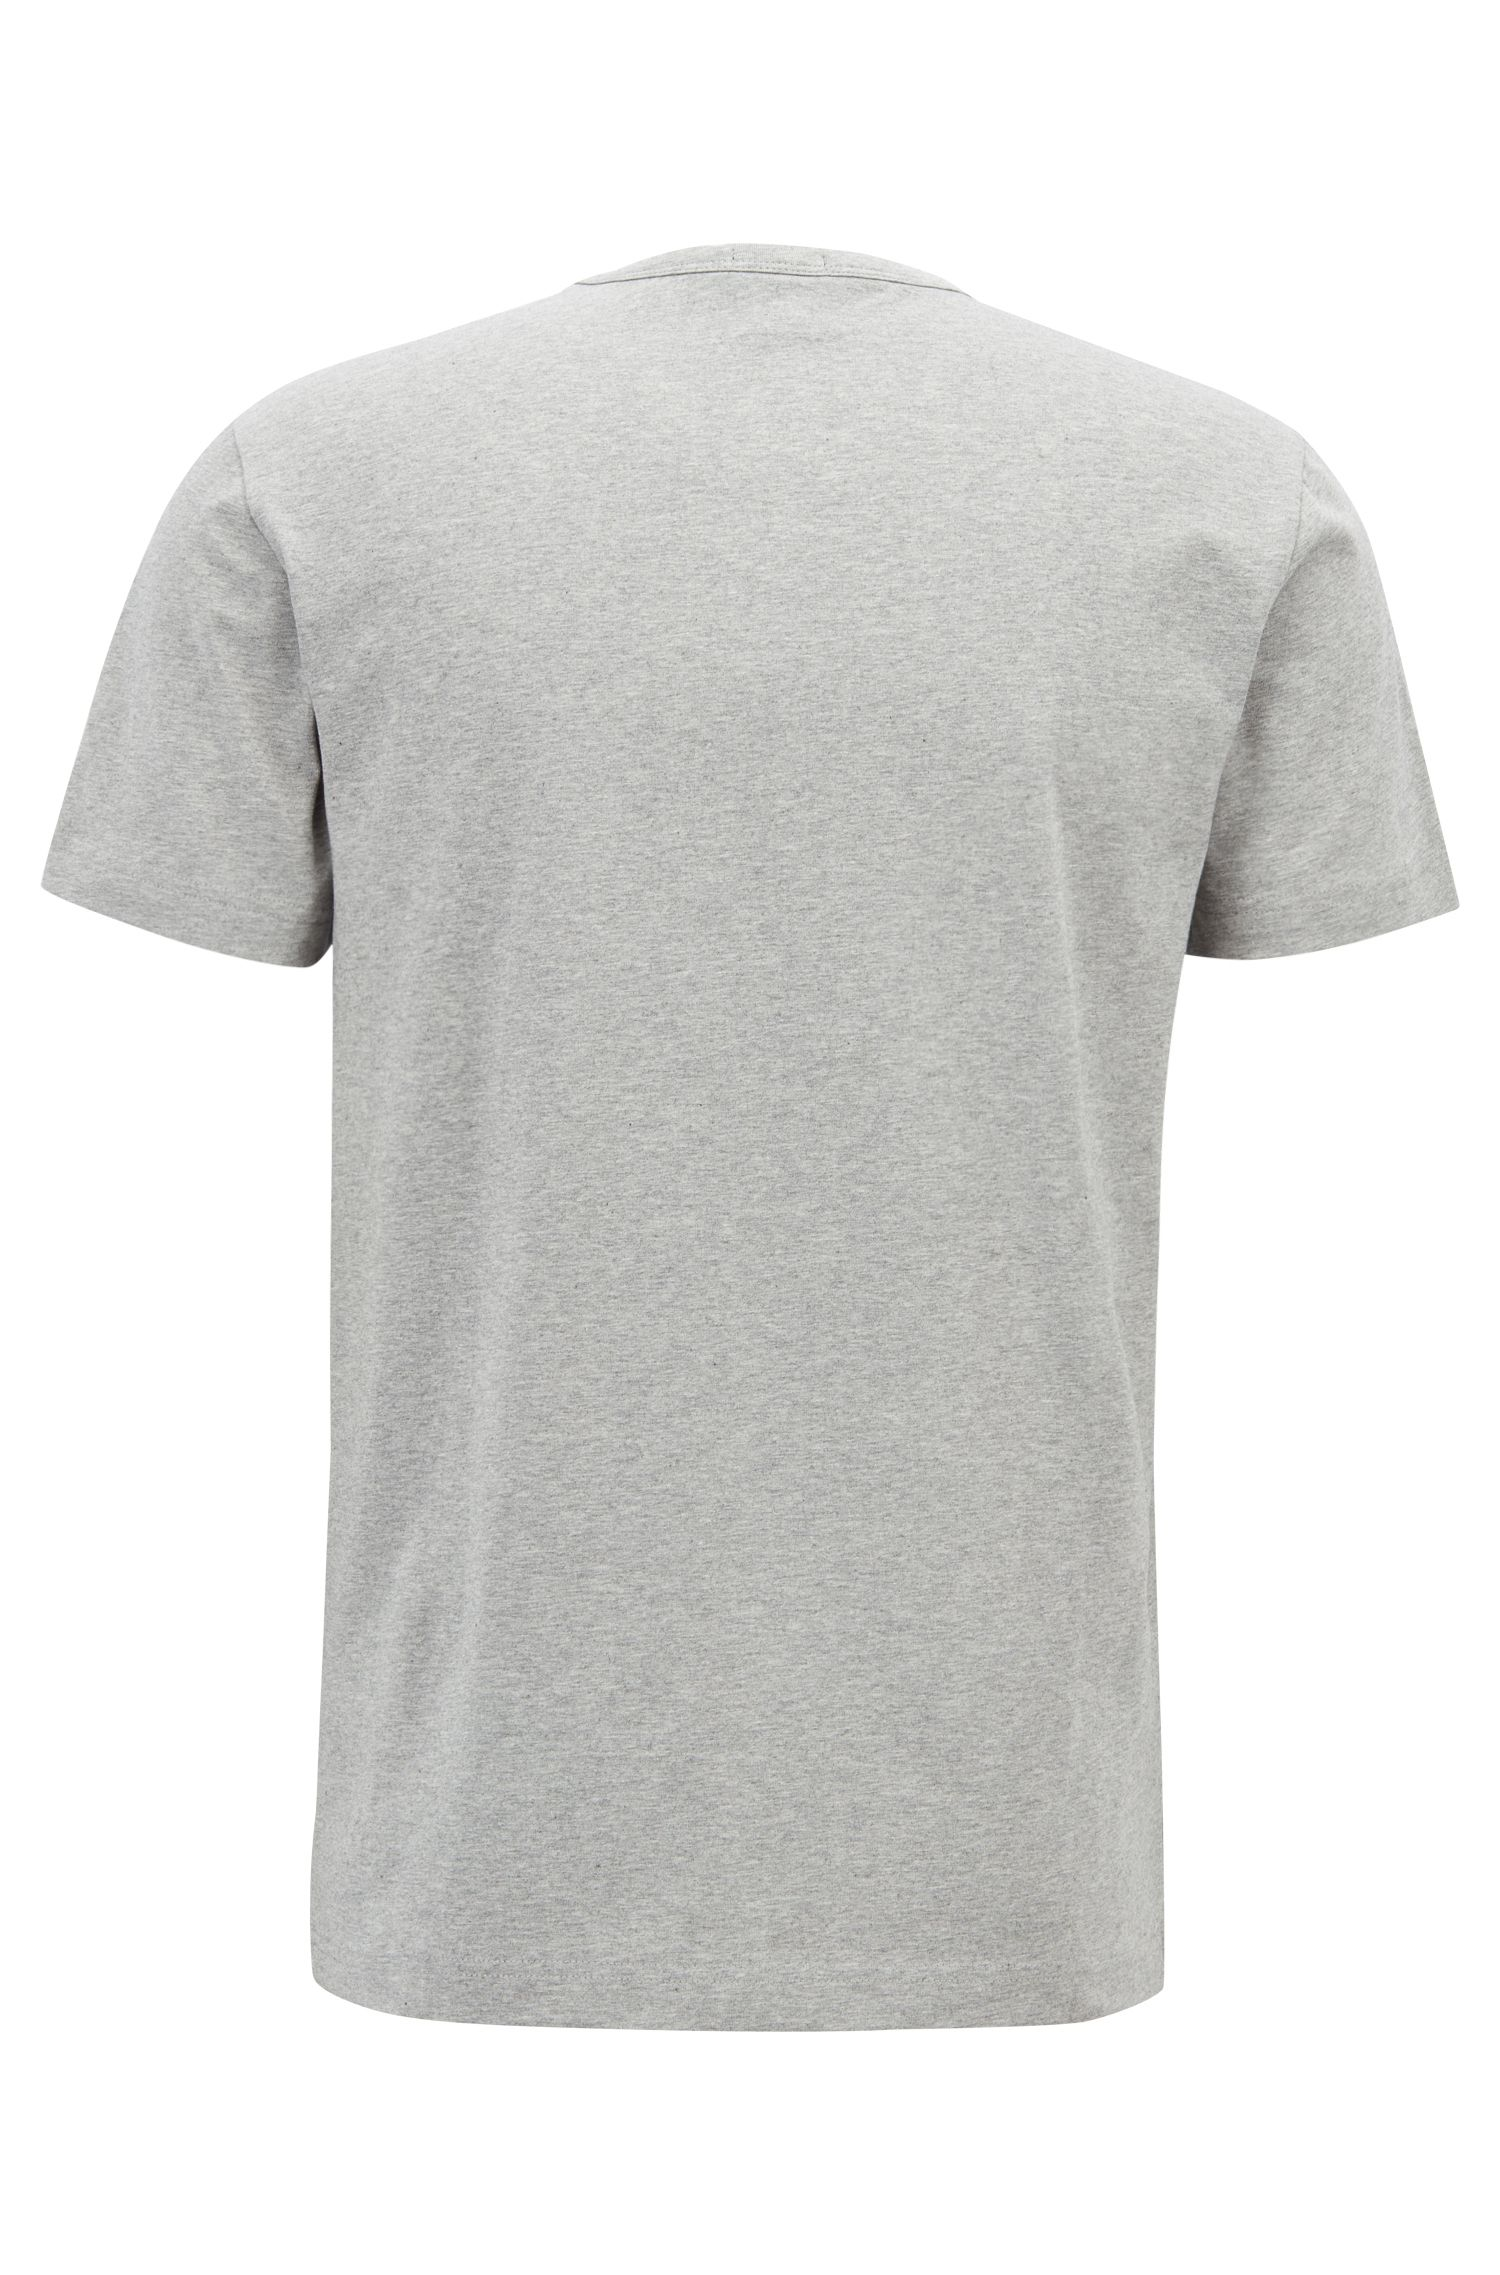 Crew-neck T-shirt in stretch cotton with reflective logo, Light Grey